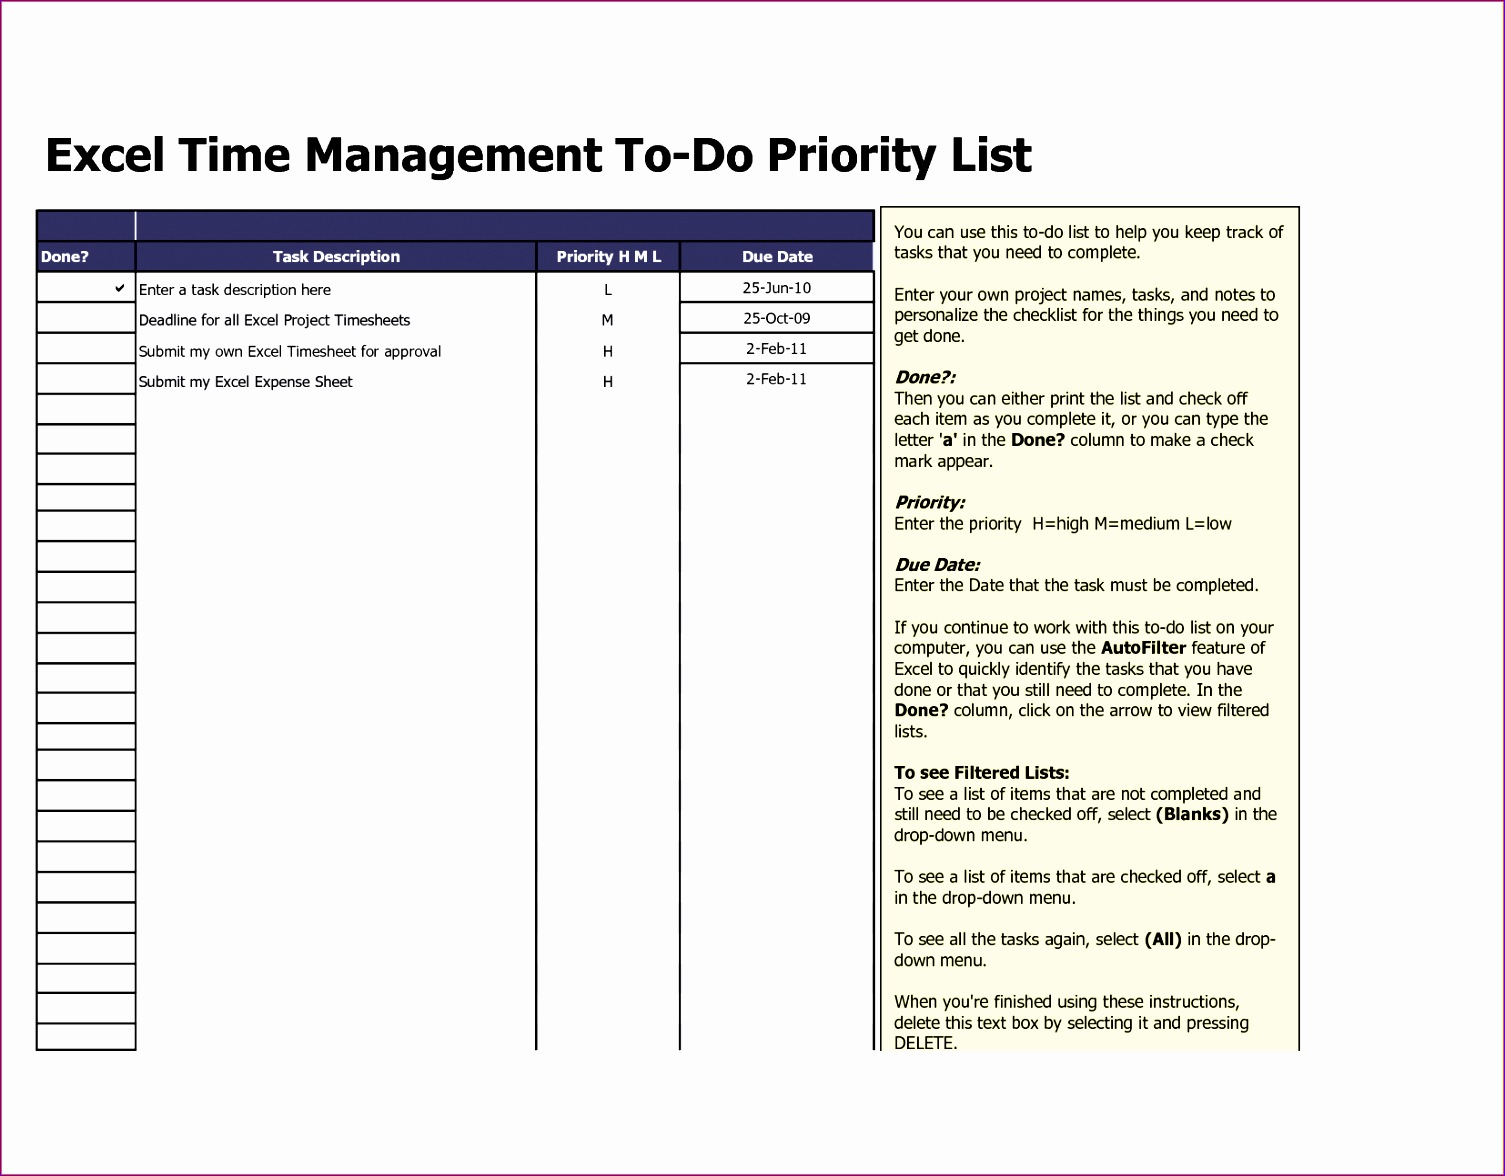 5 Excel Template to Do List - ExcelTemplates - ExcelTemplates